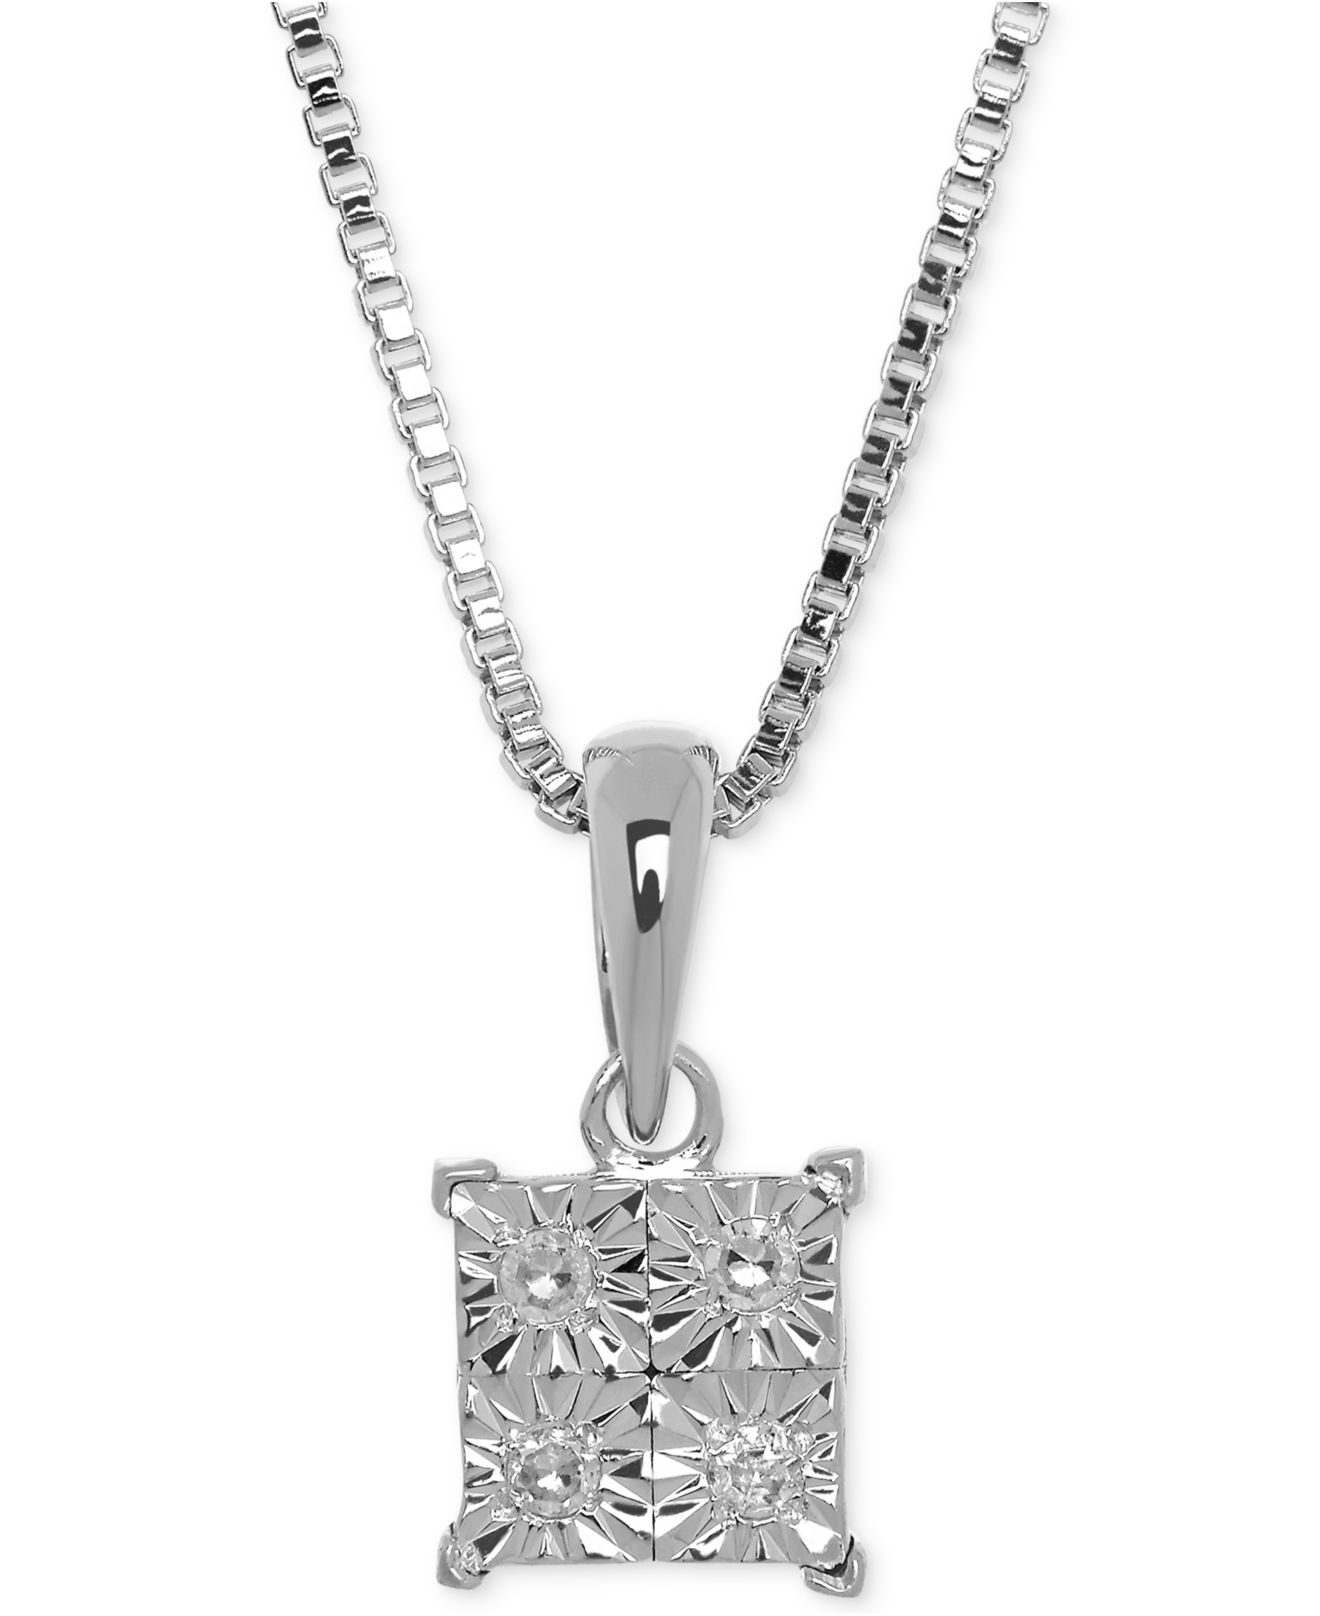 macys jewelry macy s accent pendant necklace in sterling silver 3441